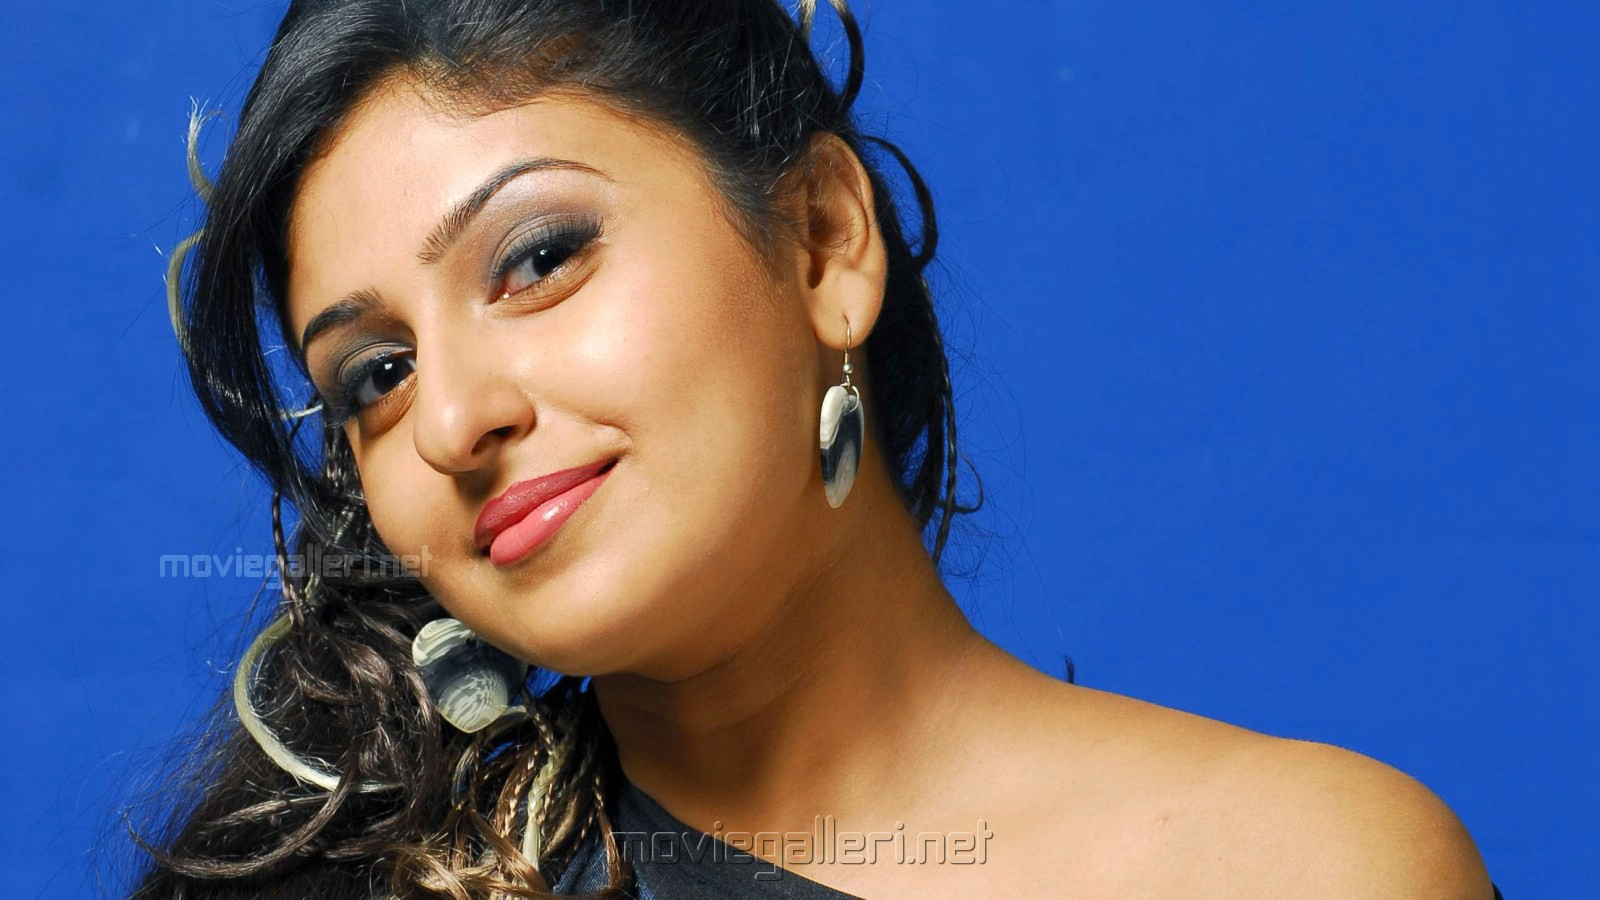 Monica Tamil Actress Wallpapers   Gallery View  Tamil Movie Hot Wallpapers